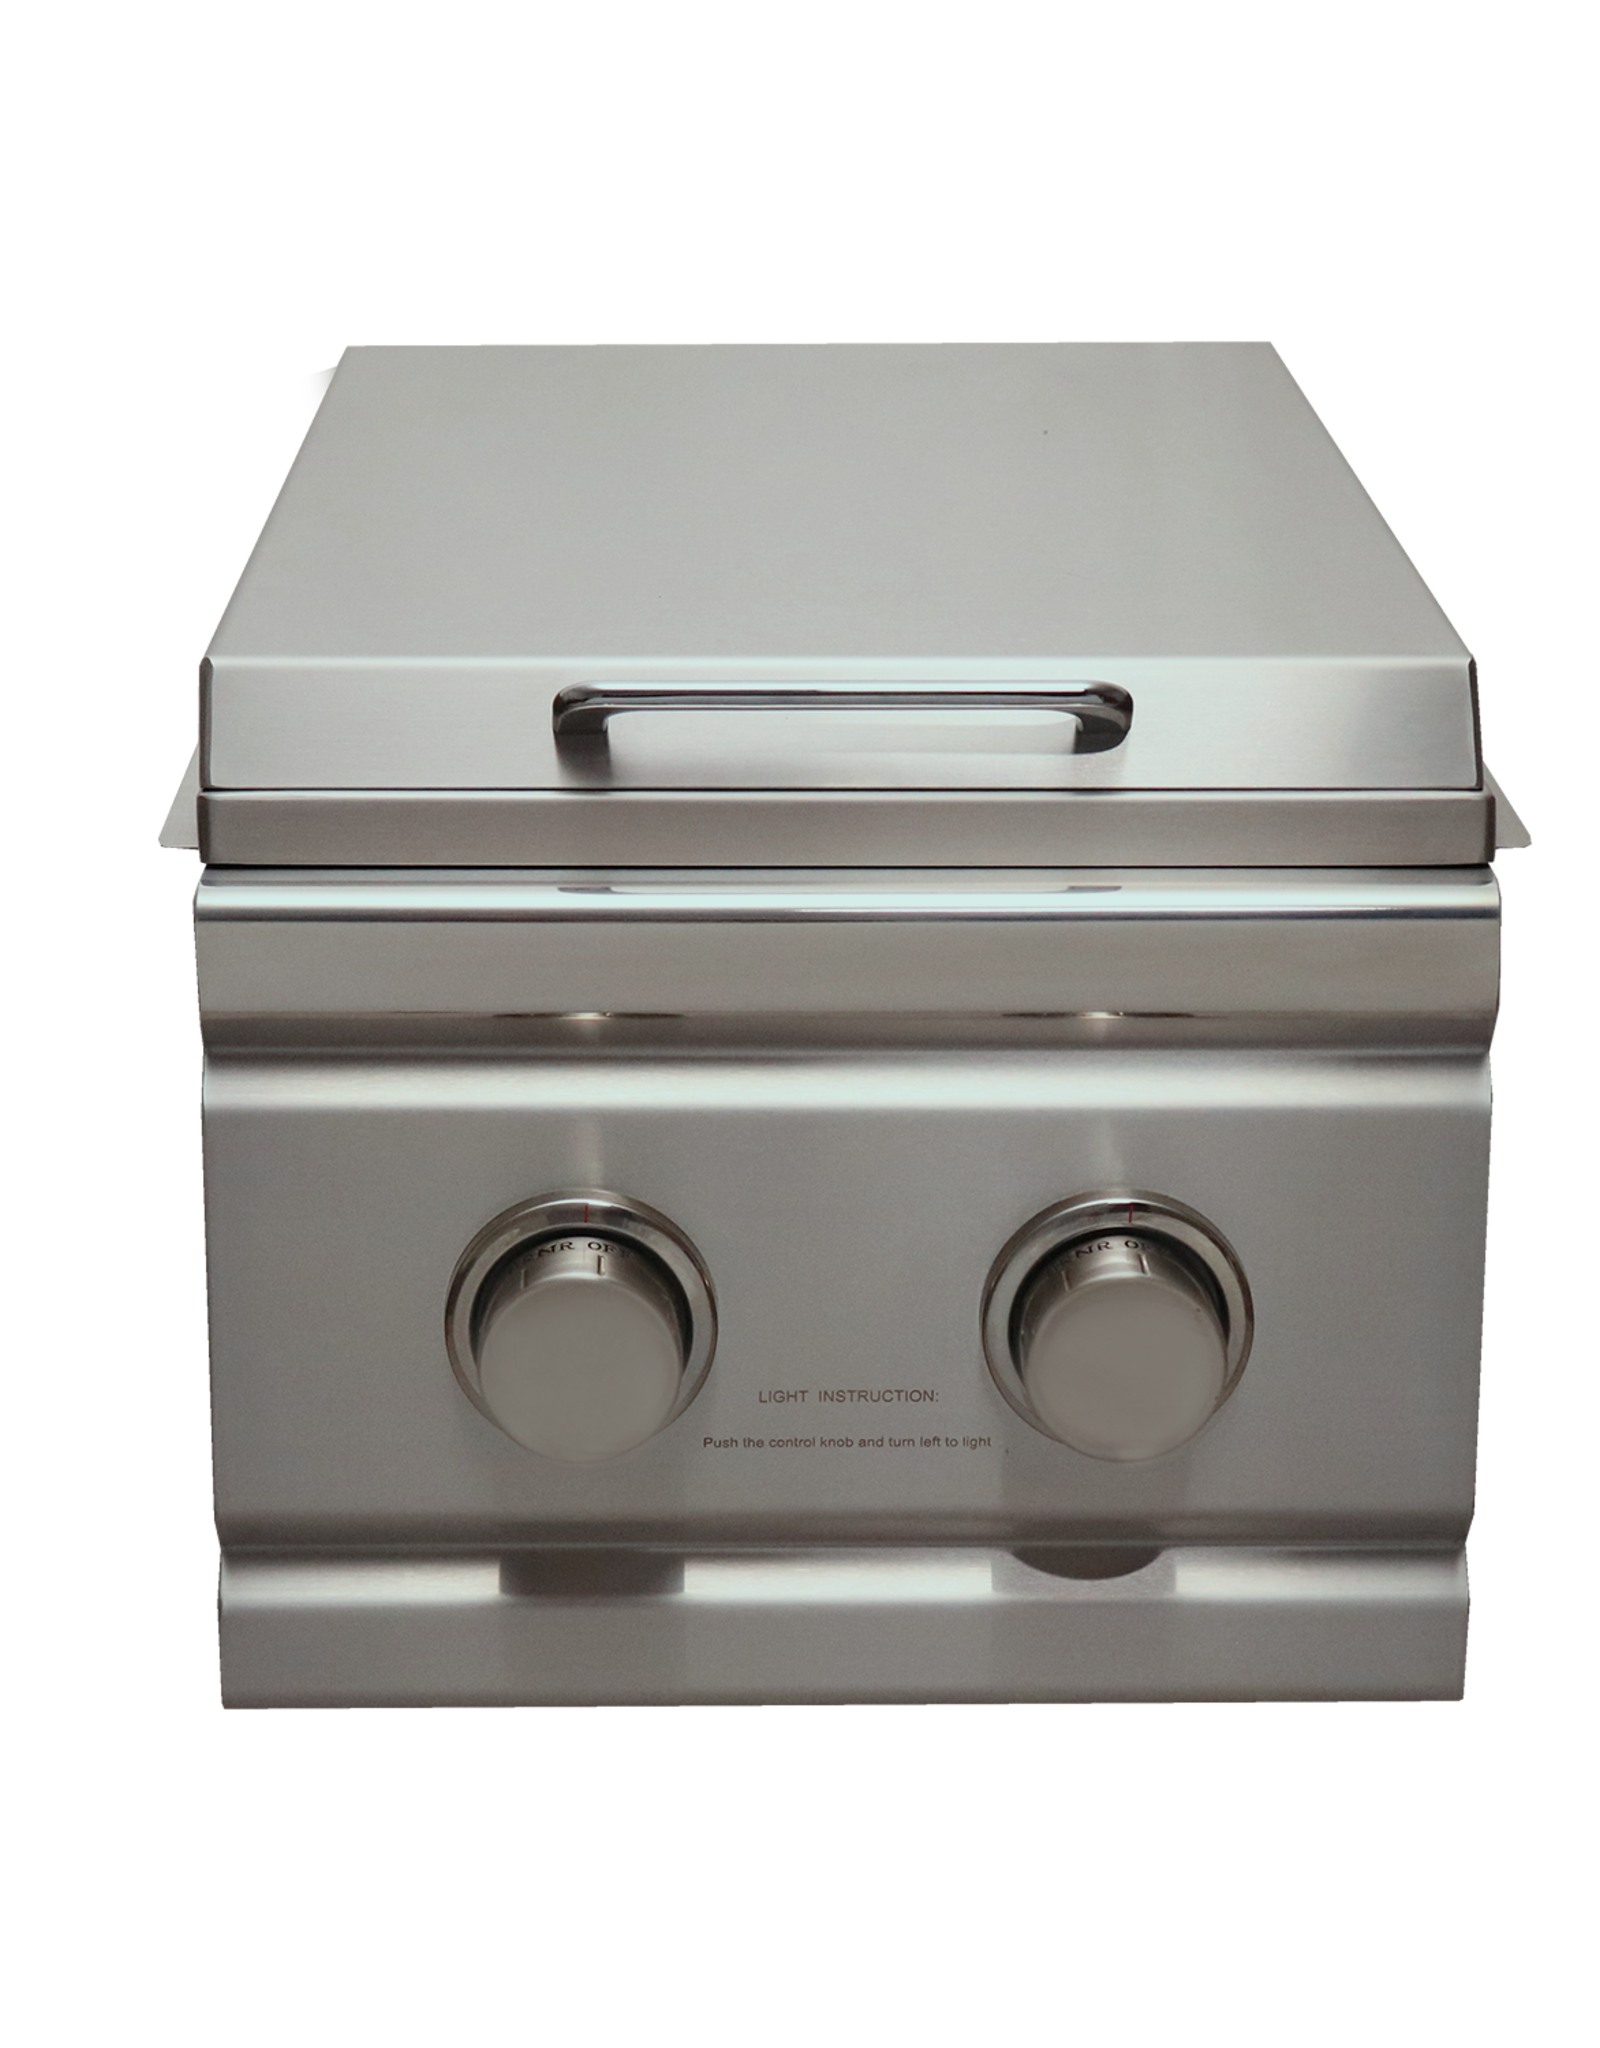 Renaissance Cooking Systems Renaissance Cooking Systems The Cutlass Series Double Side Burner - RDB1